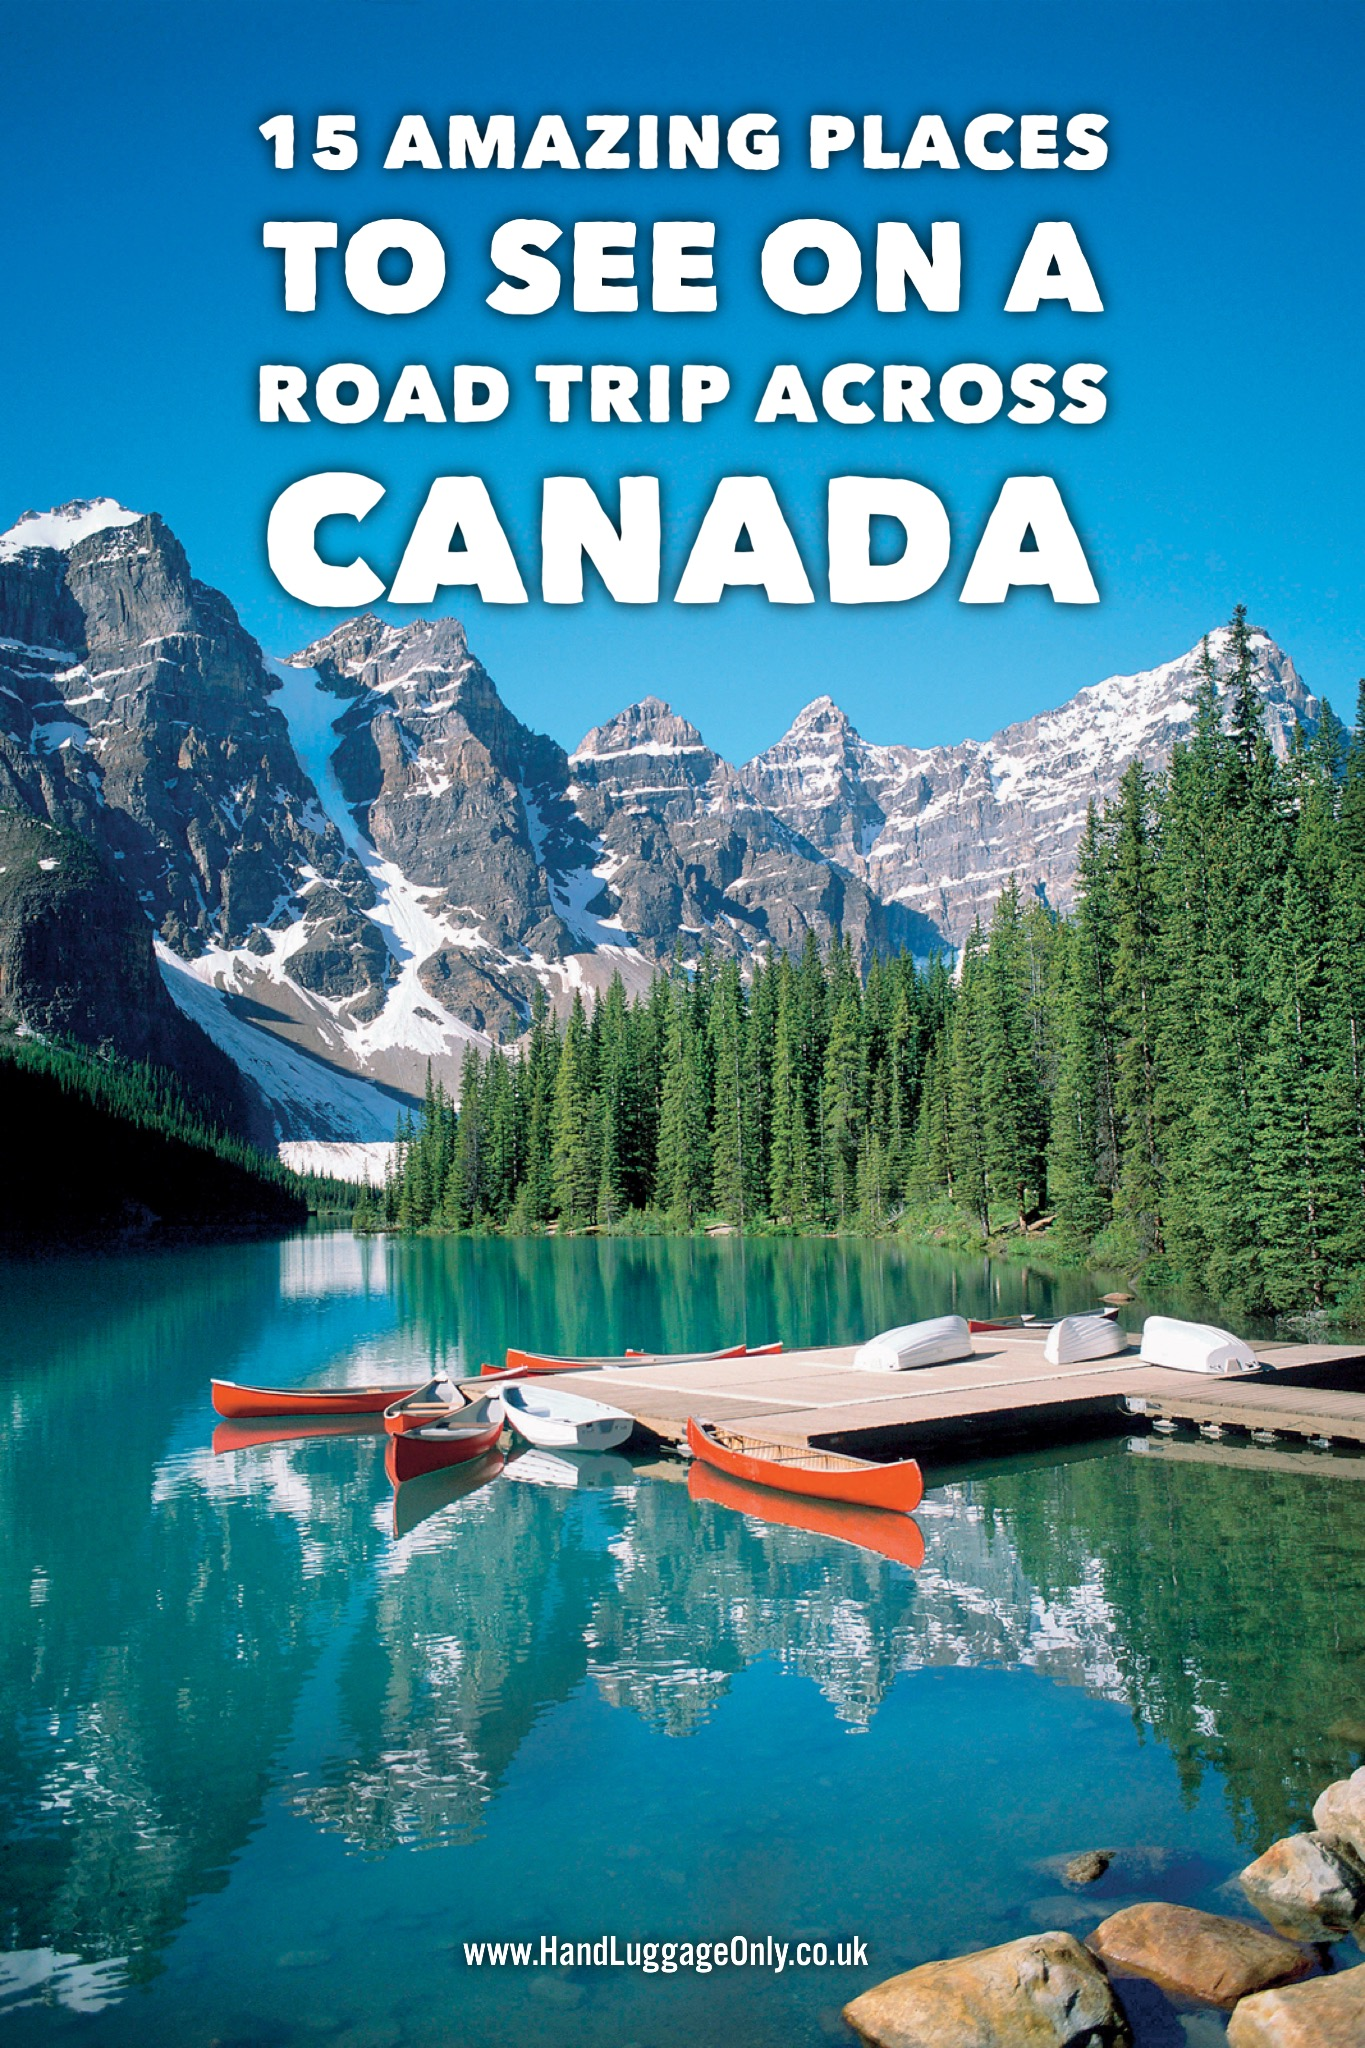 15 Amazing Places You Have To Visit On A Road Trip Across Canada (1)